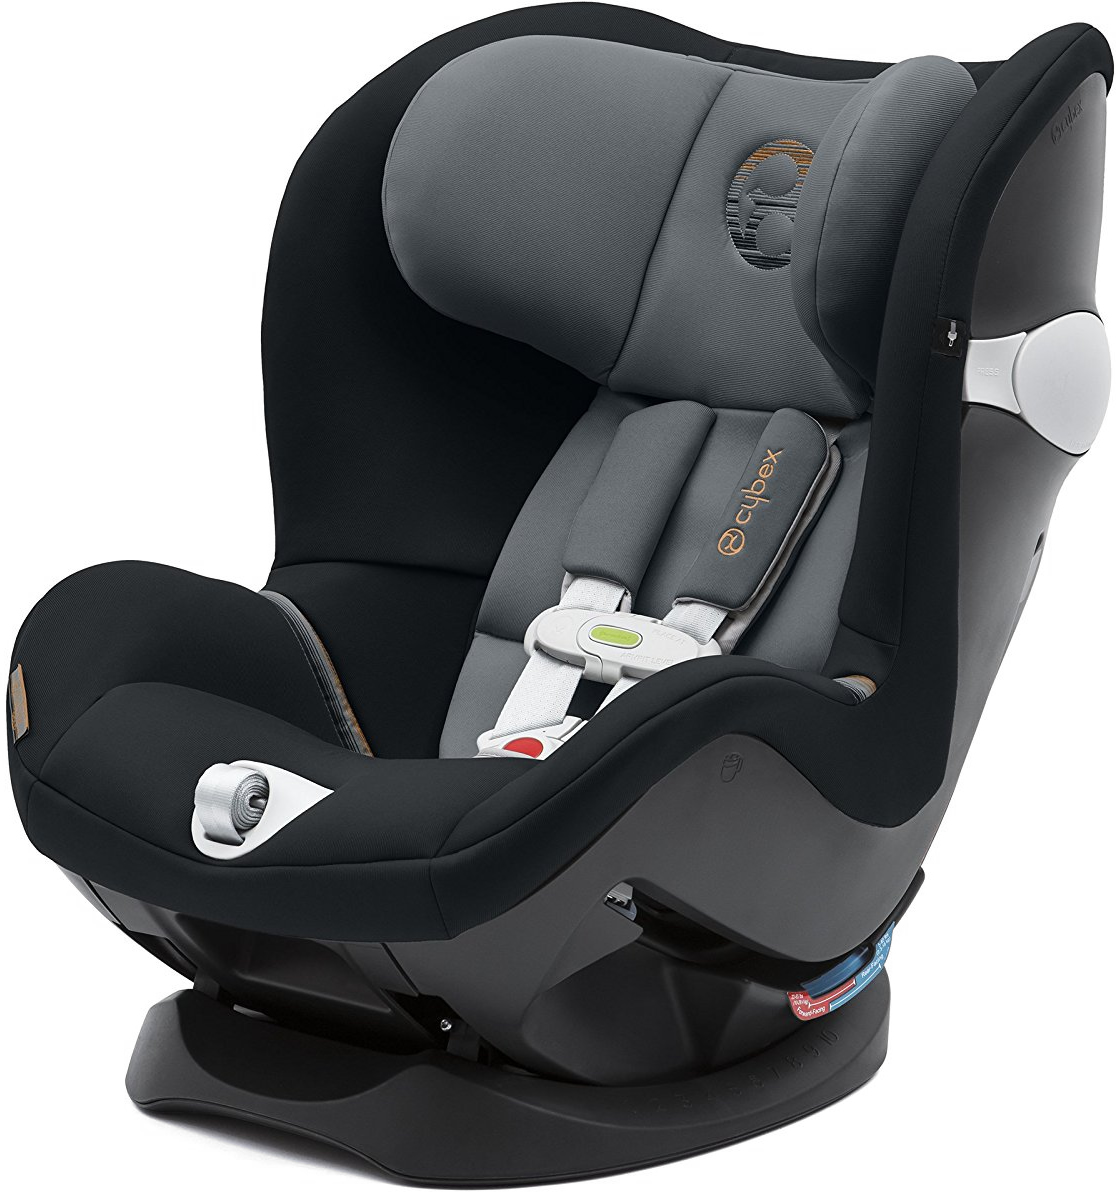 Avocent Sirona M Sensorsafe 2.0 Convertible Car Seat - Pe...